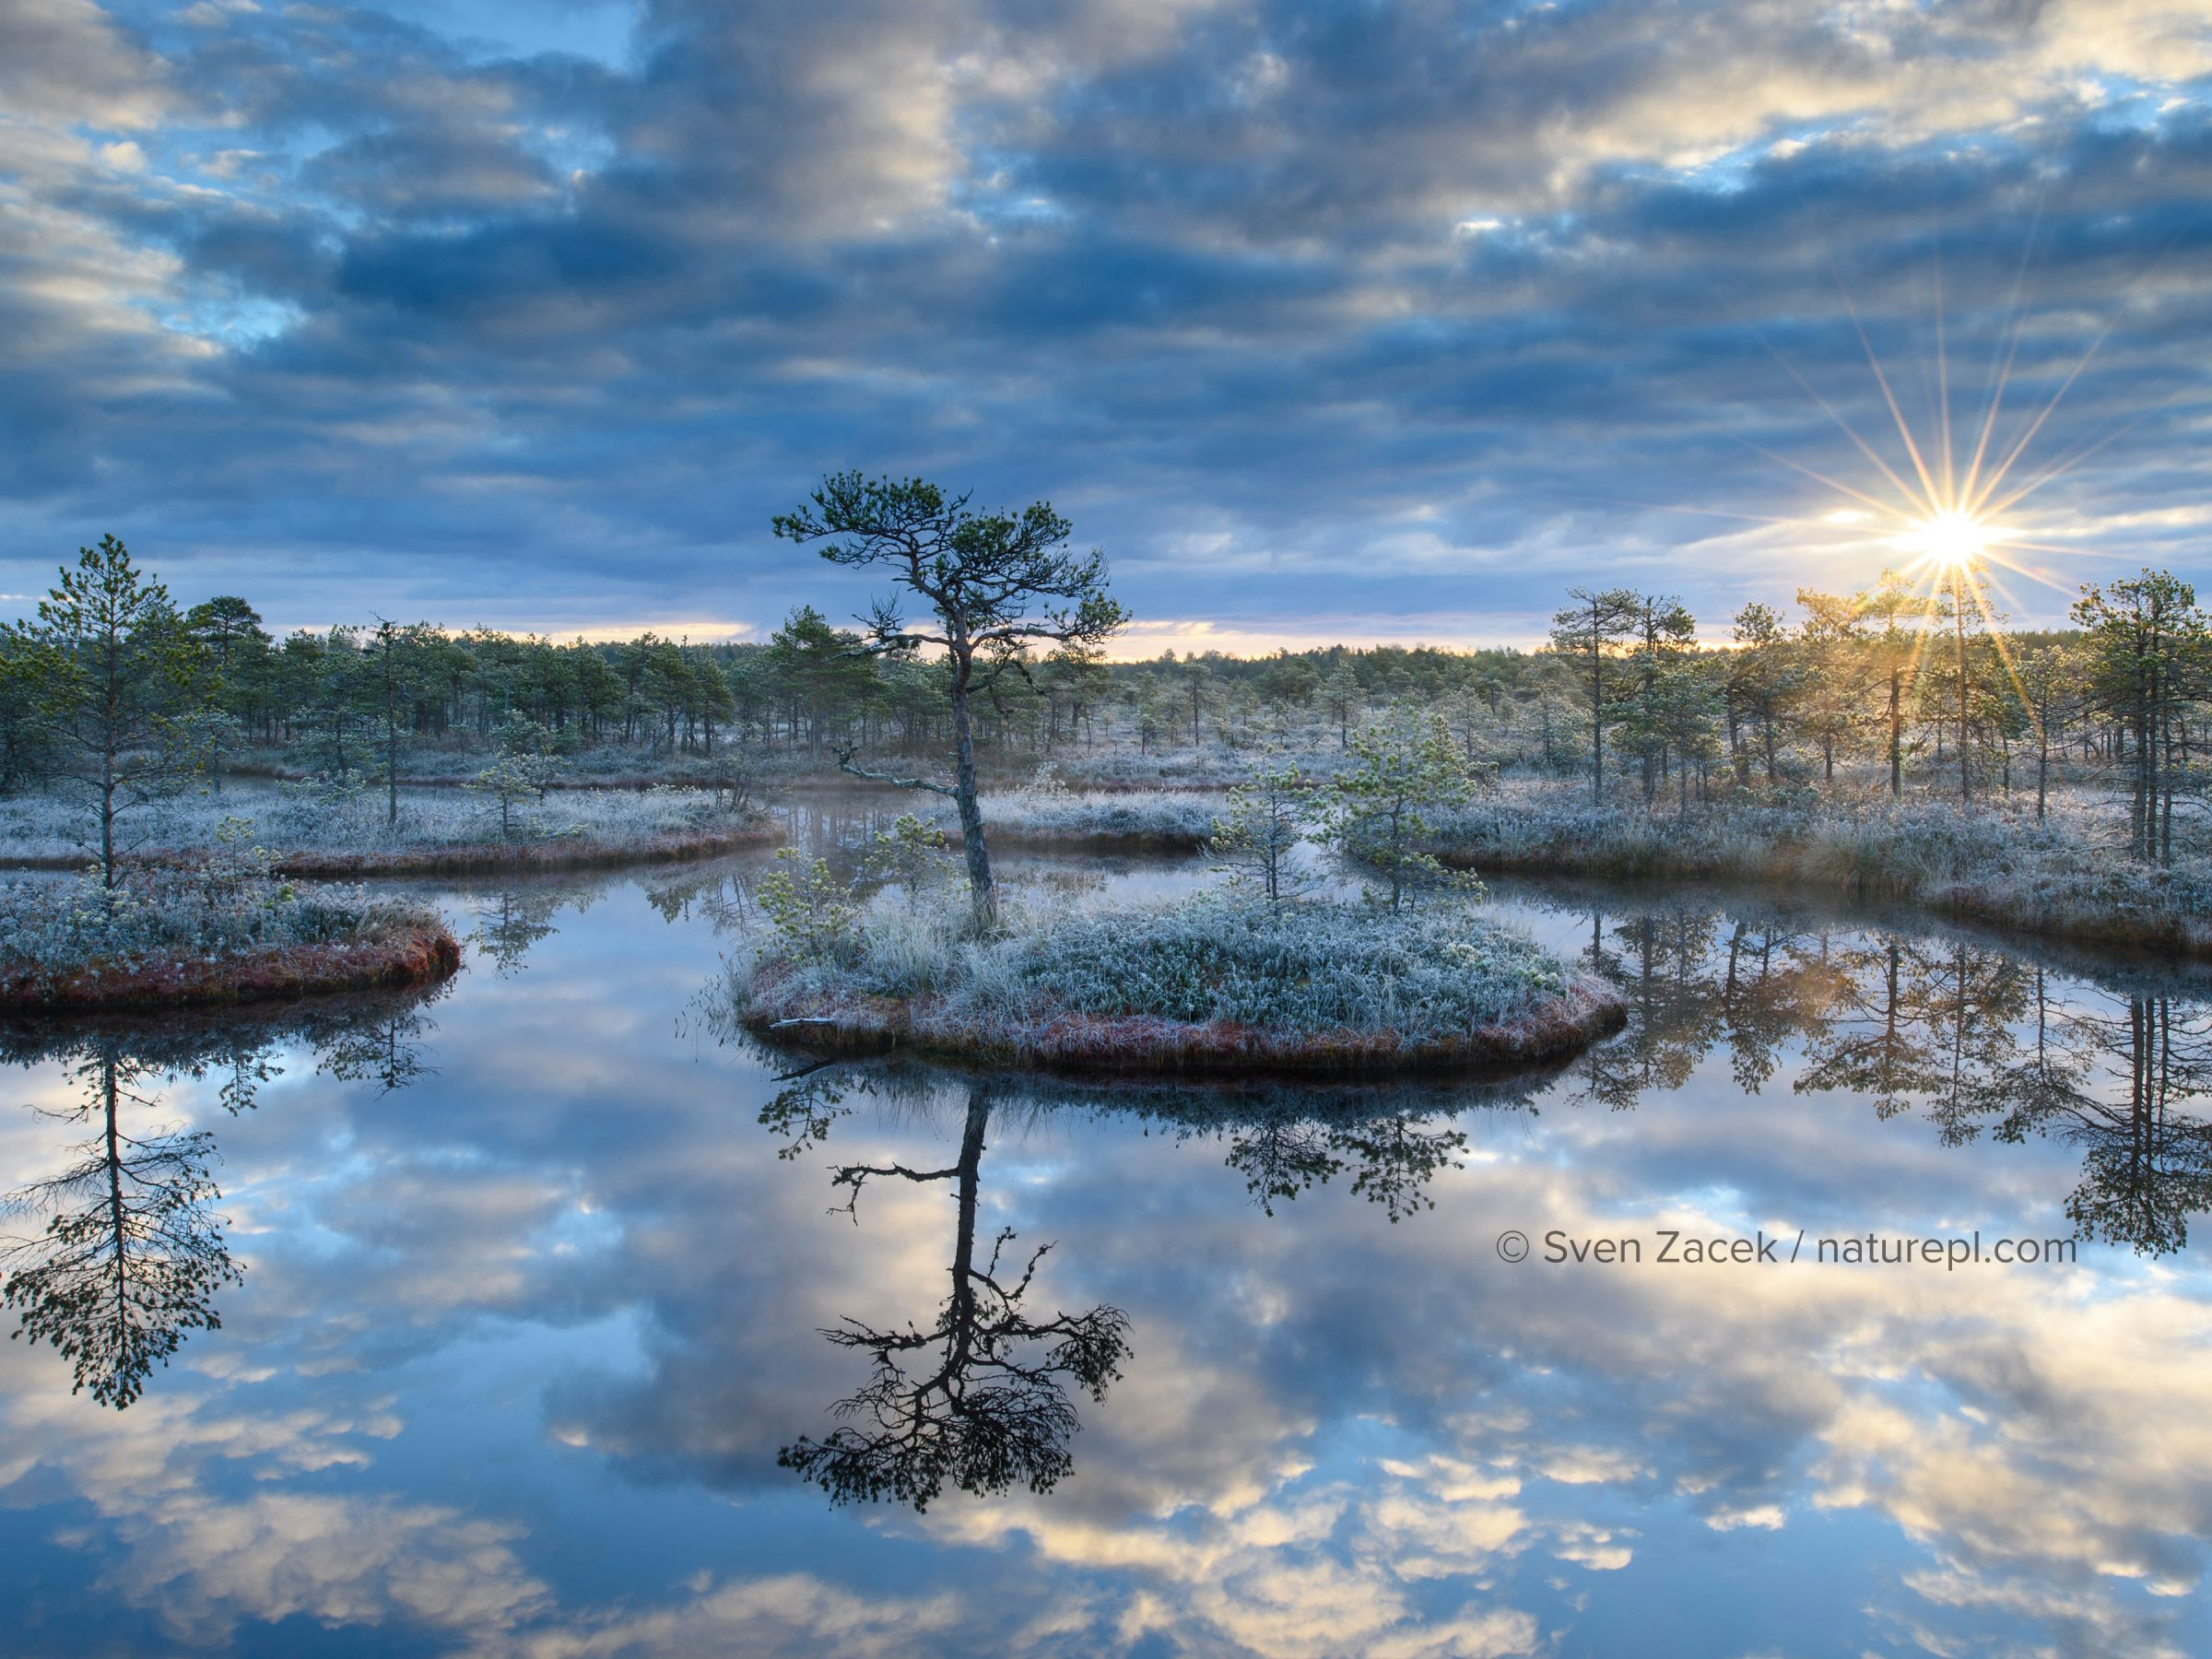 Sunrise over bog with trees reflected in pool. Endla Nature Reserve, Jogevamaa, Central Estonia. October 2015.